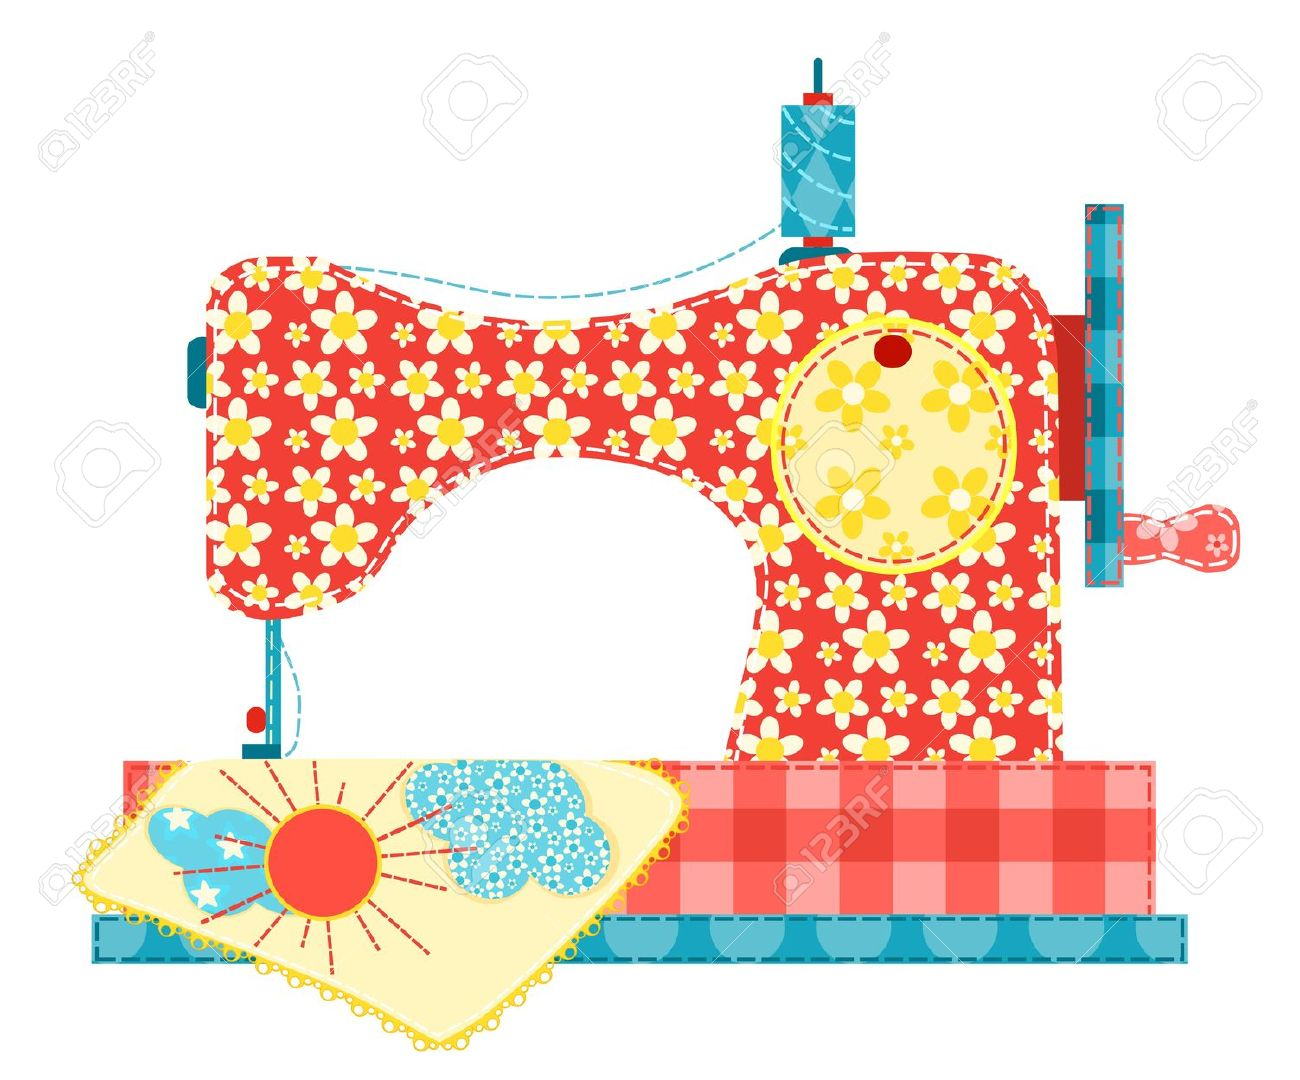 Sewing Machine clipart #11, Download drawings